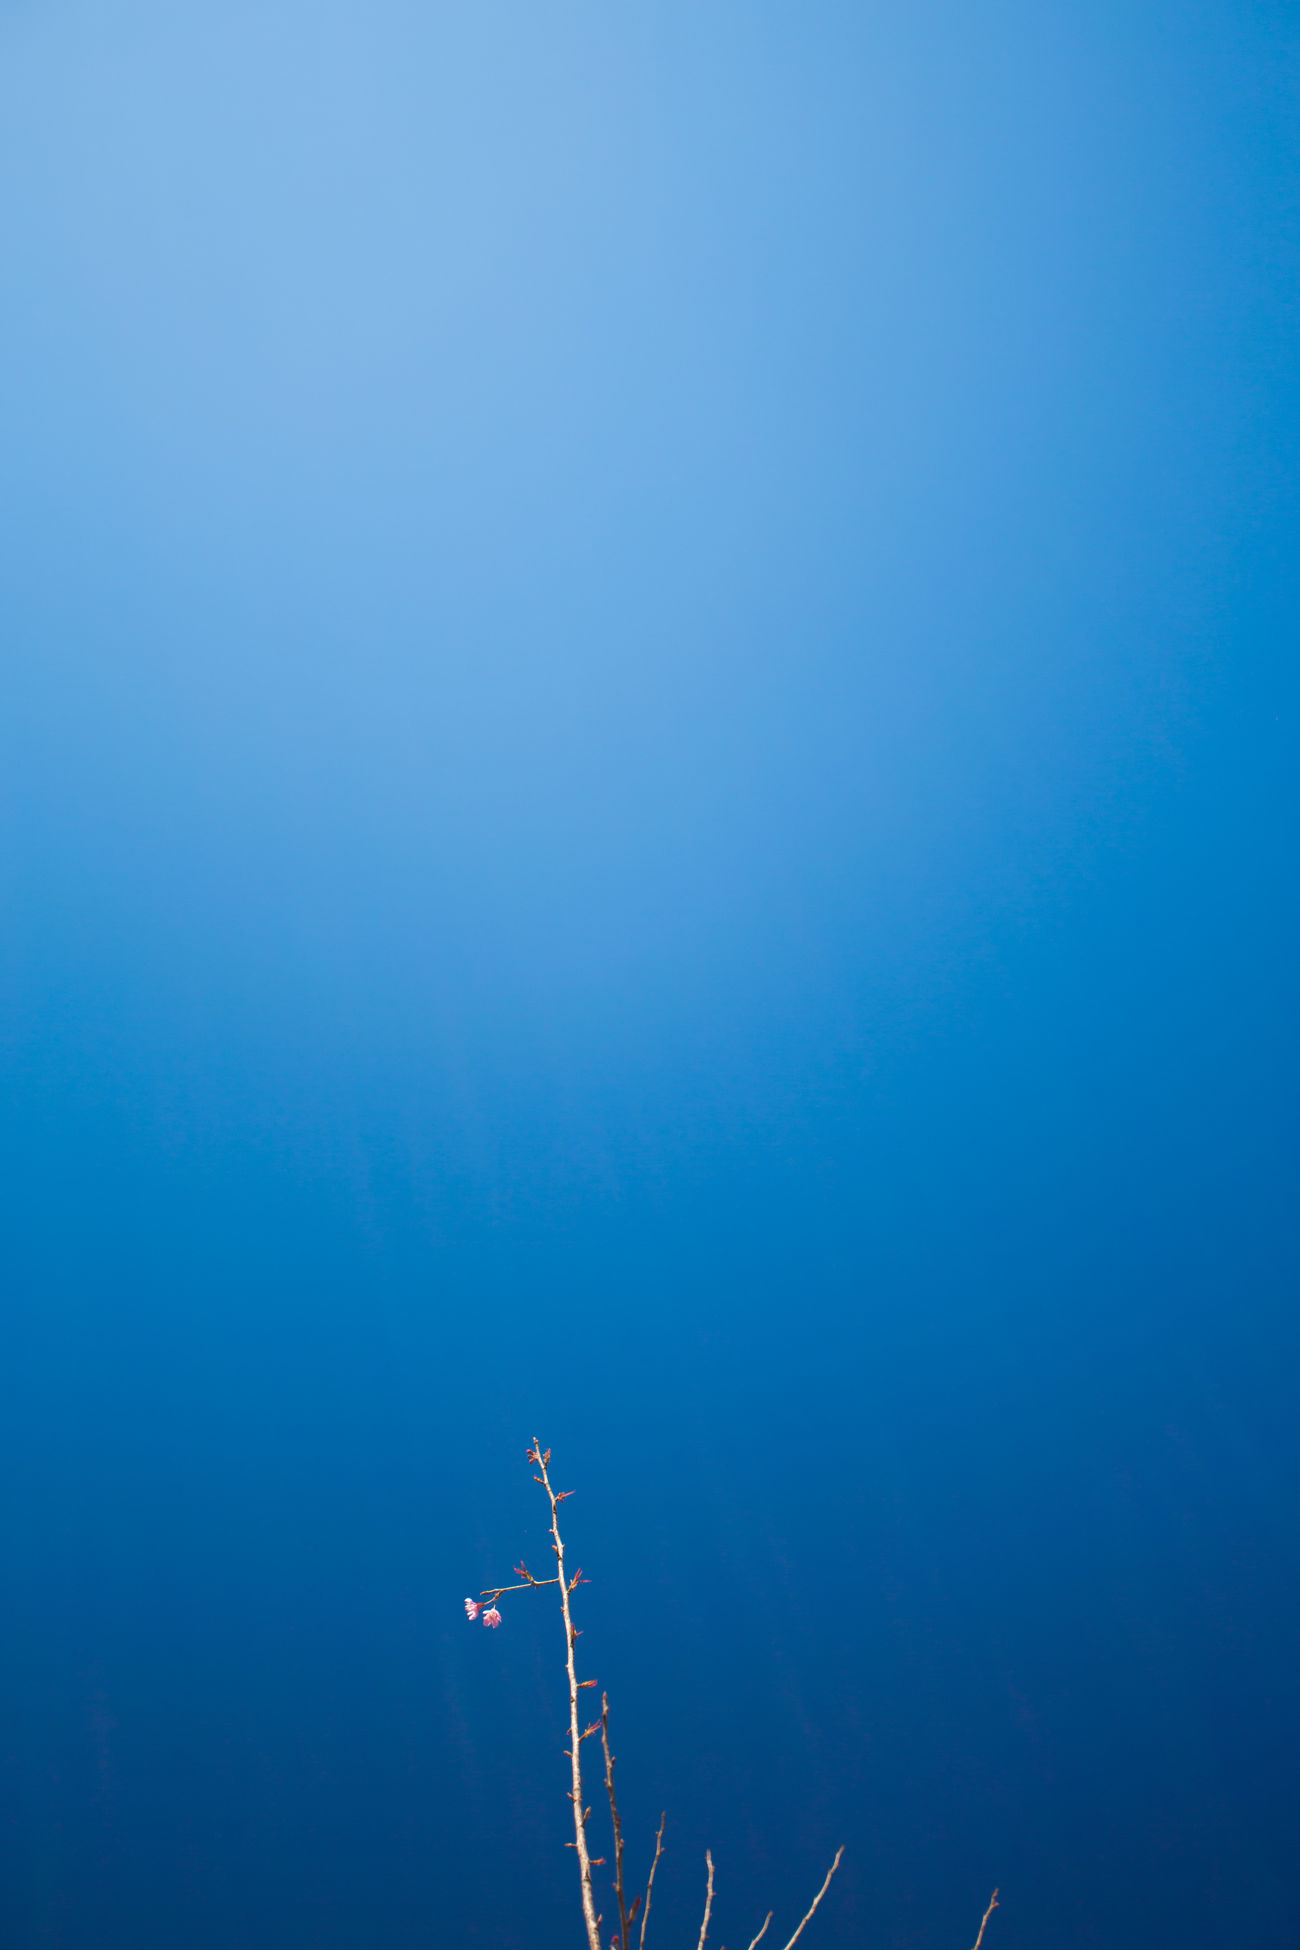 Beautiful stock photos of sky, blue, copy space, low angle view, clear sky